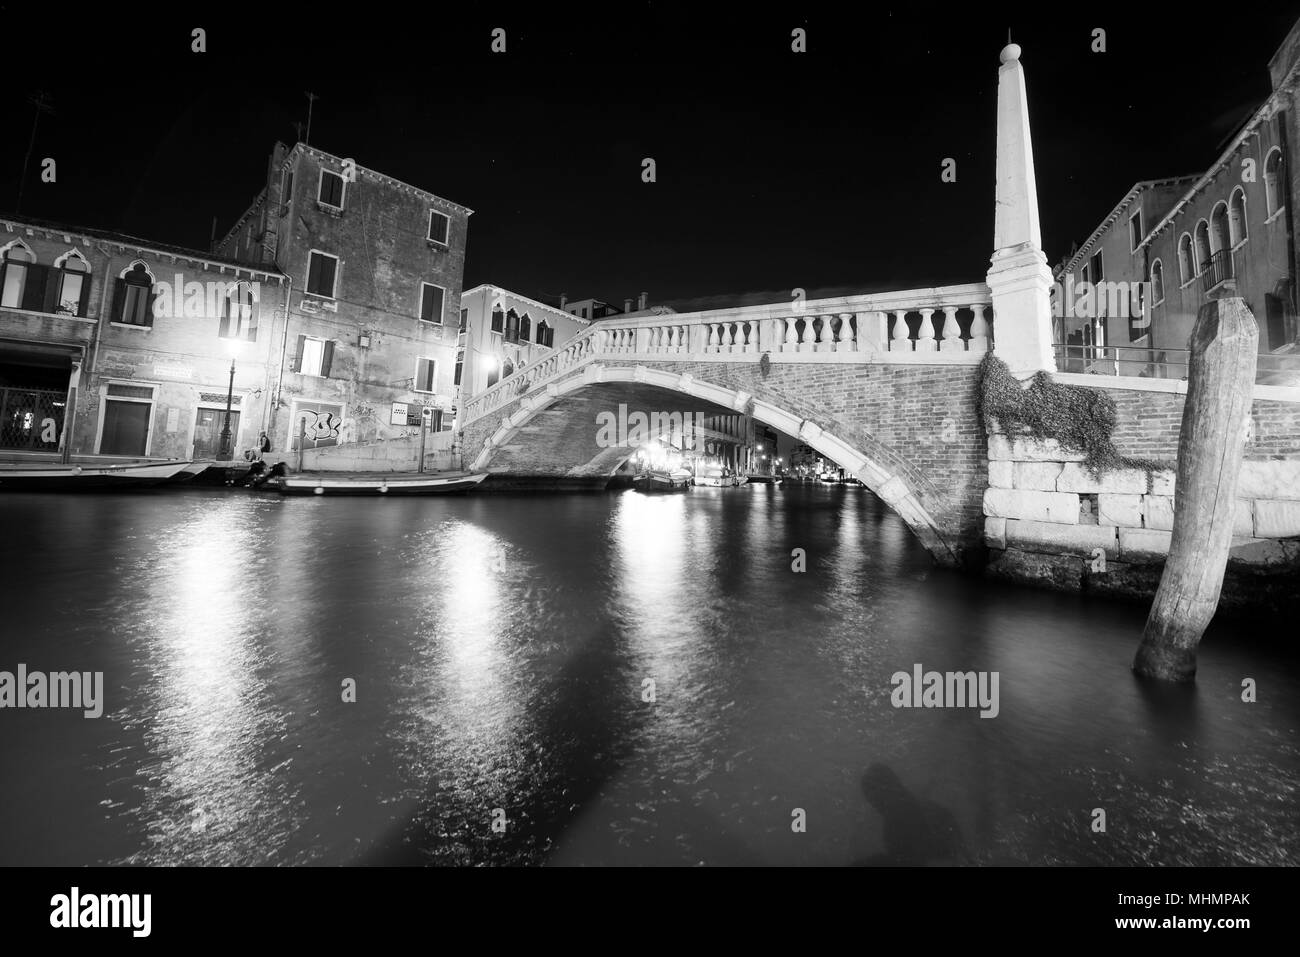 venice canals night view with light reflections in black and white - Stock Image